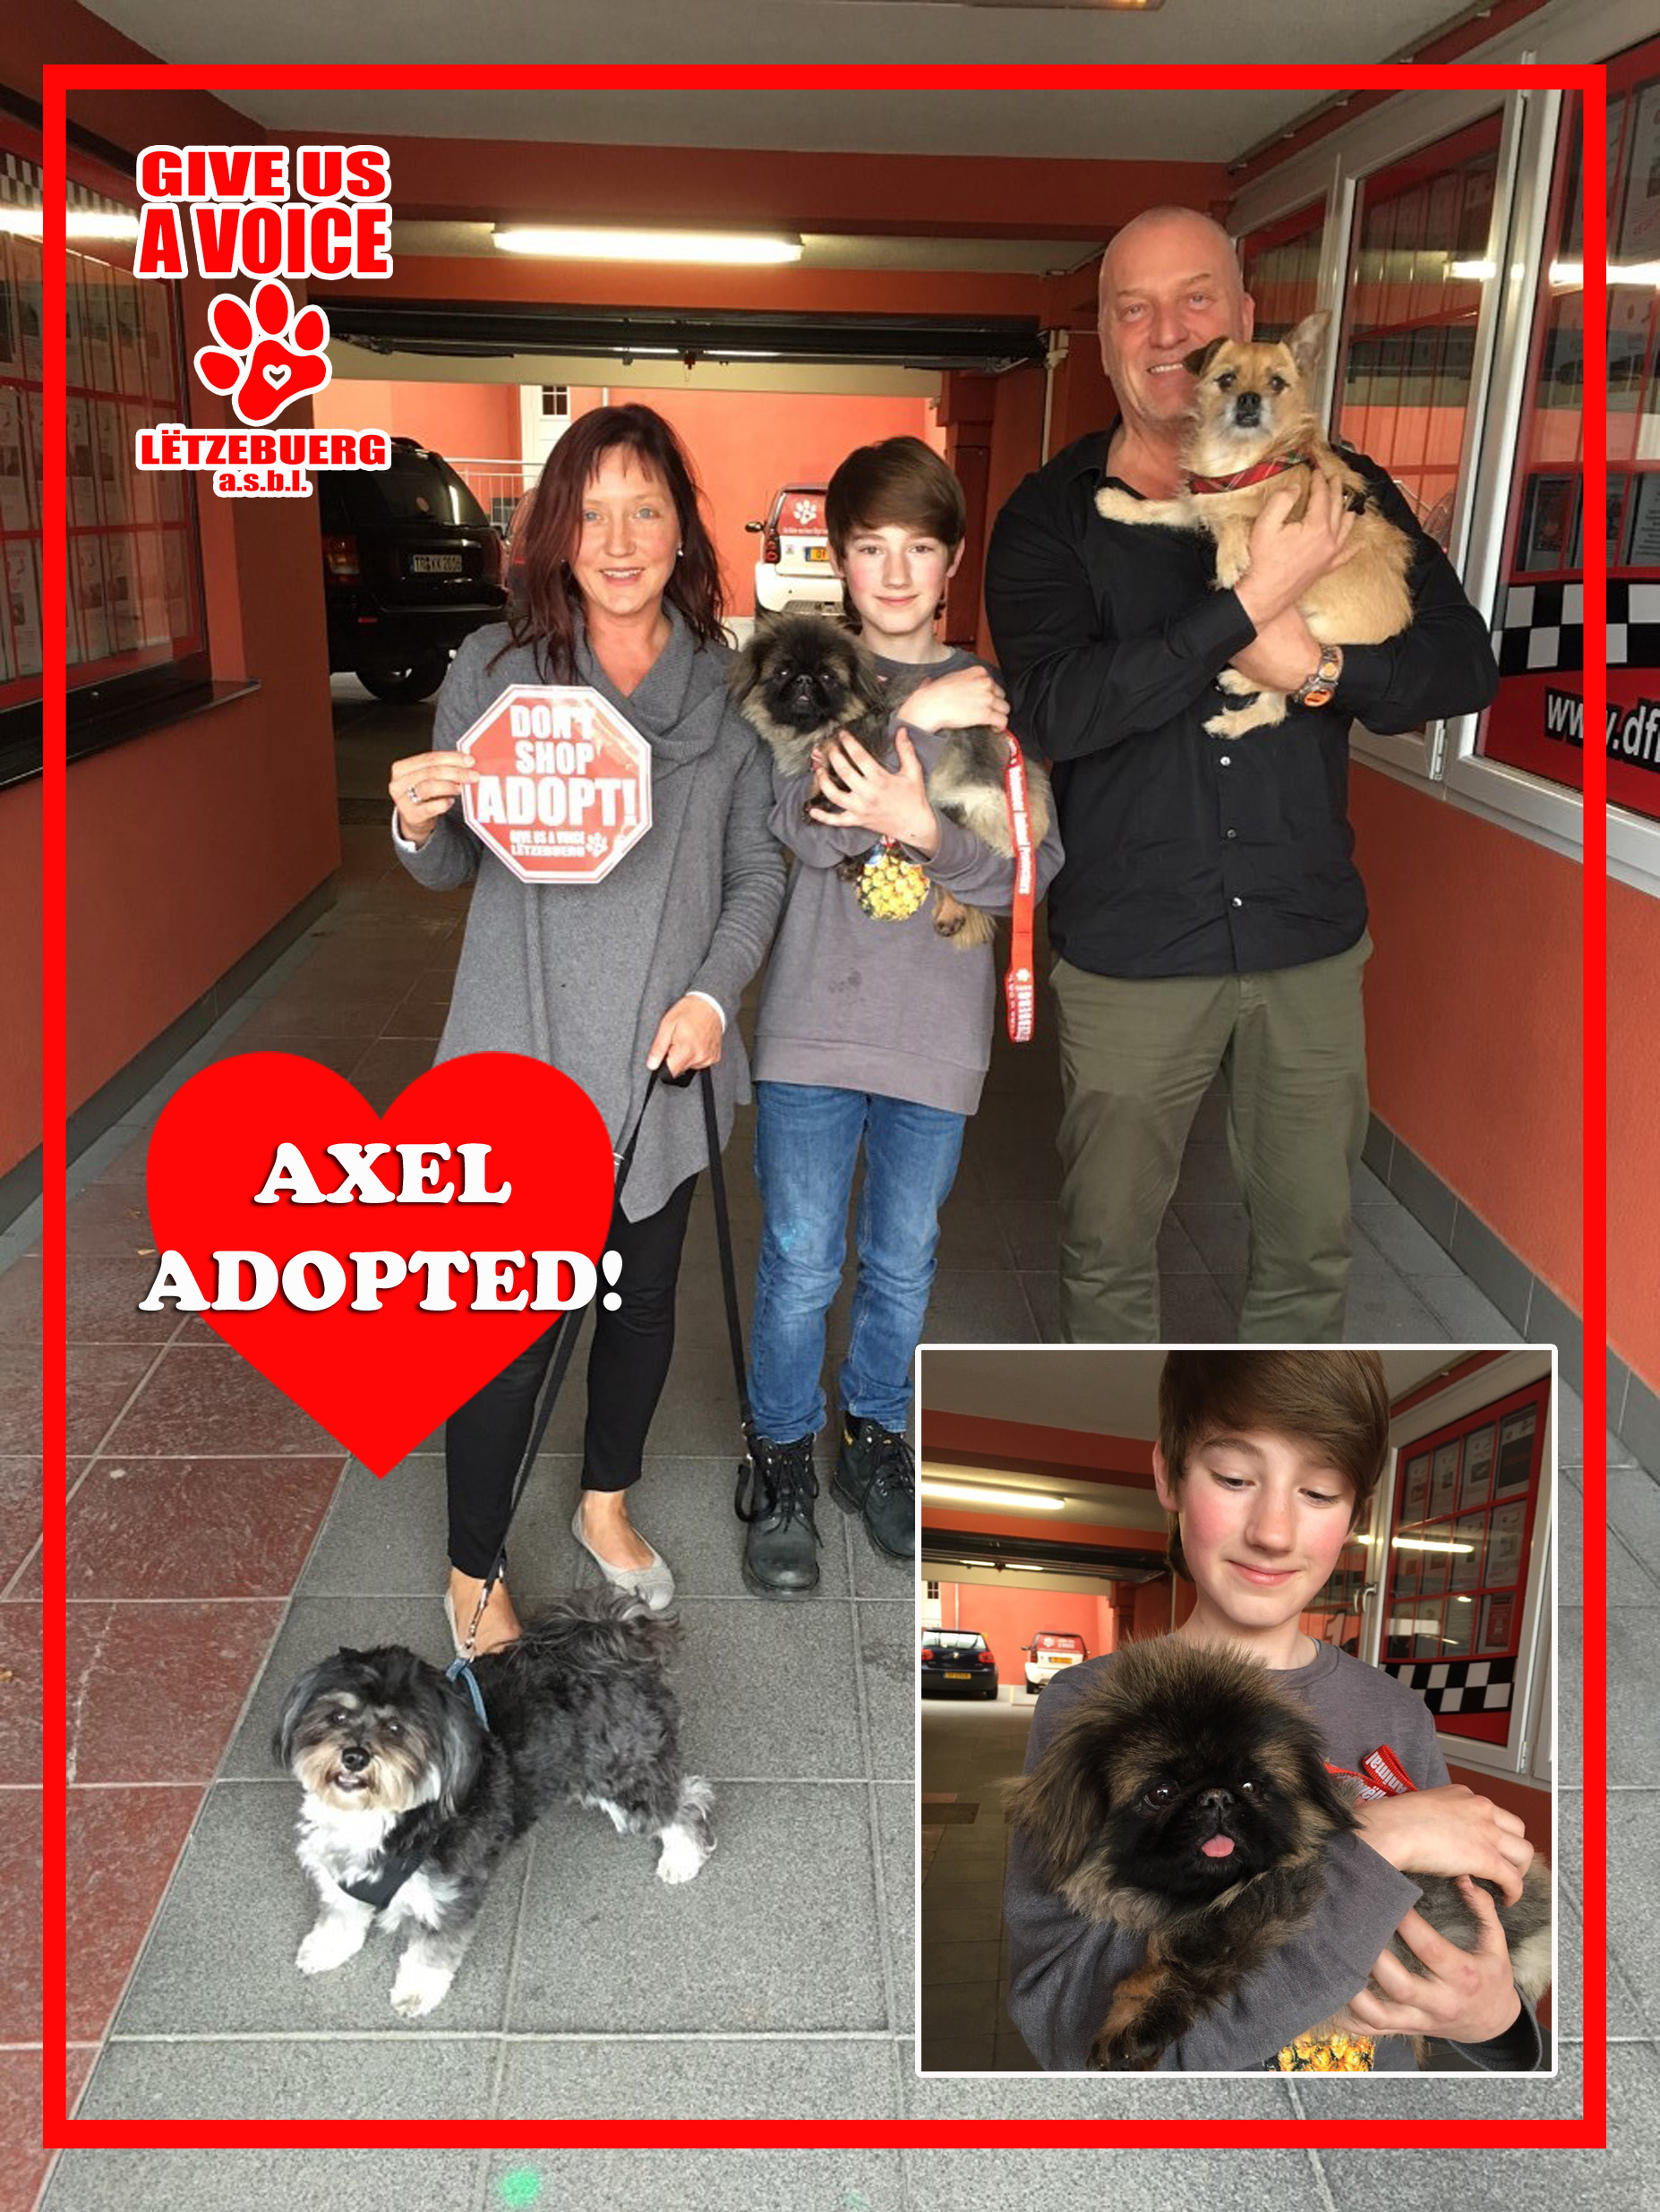 Axel Adopted! copy